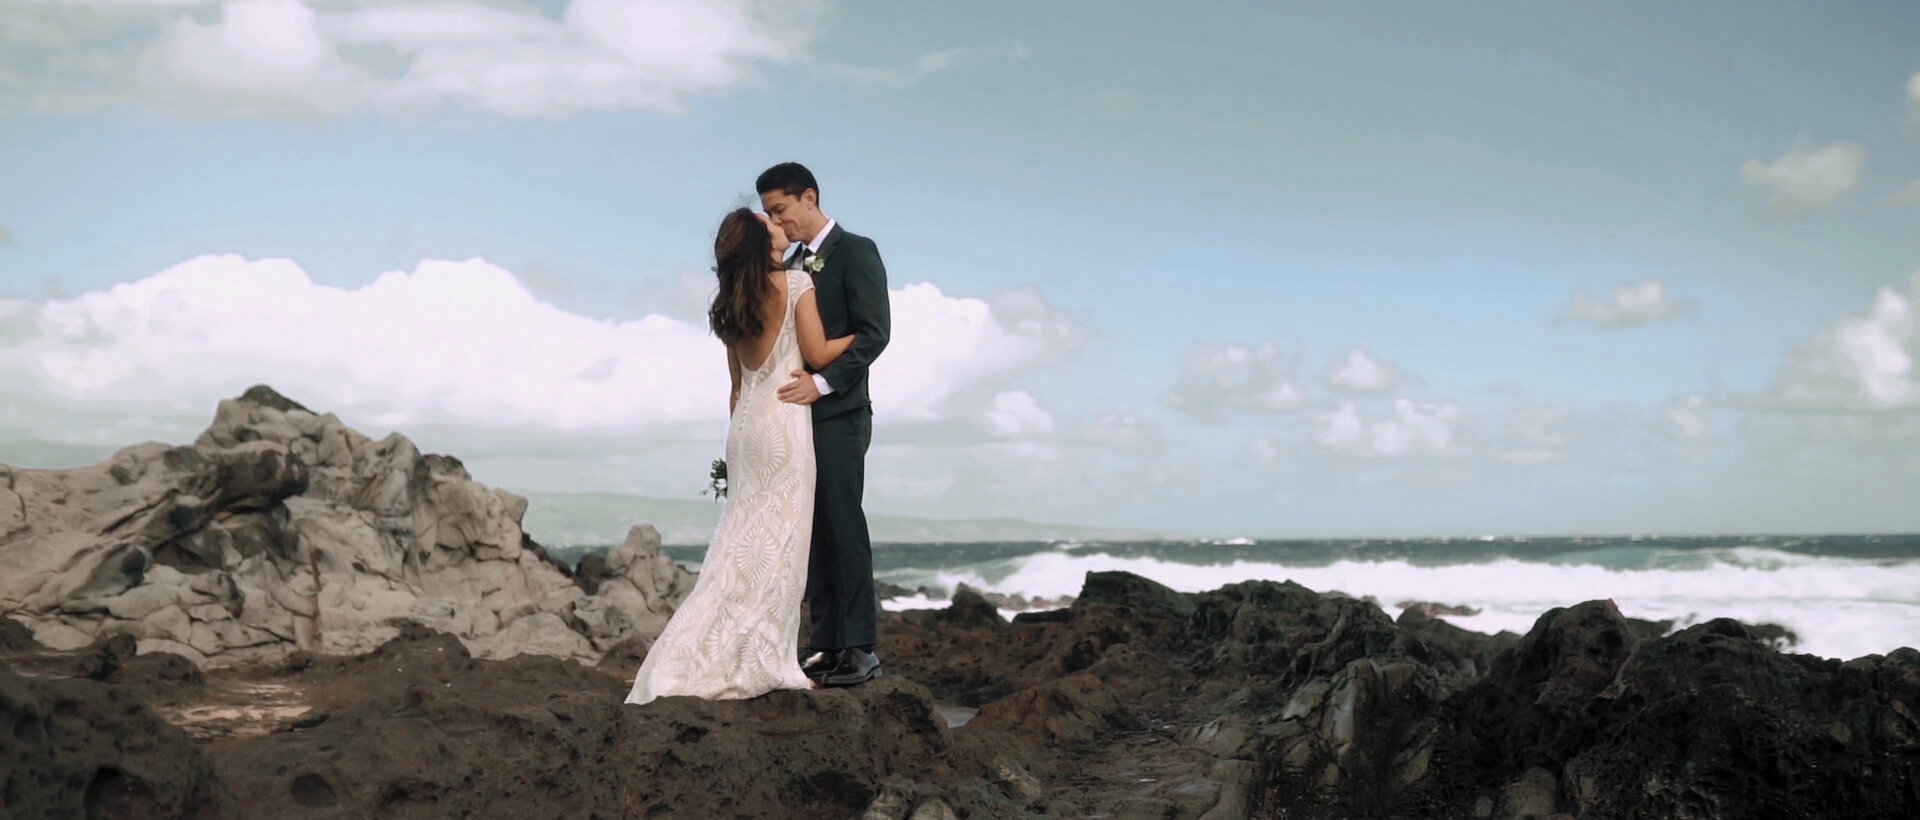 Bride and groom at Ironwoods Beach Cliffs by the ocean